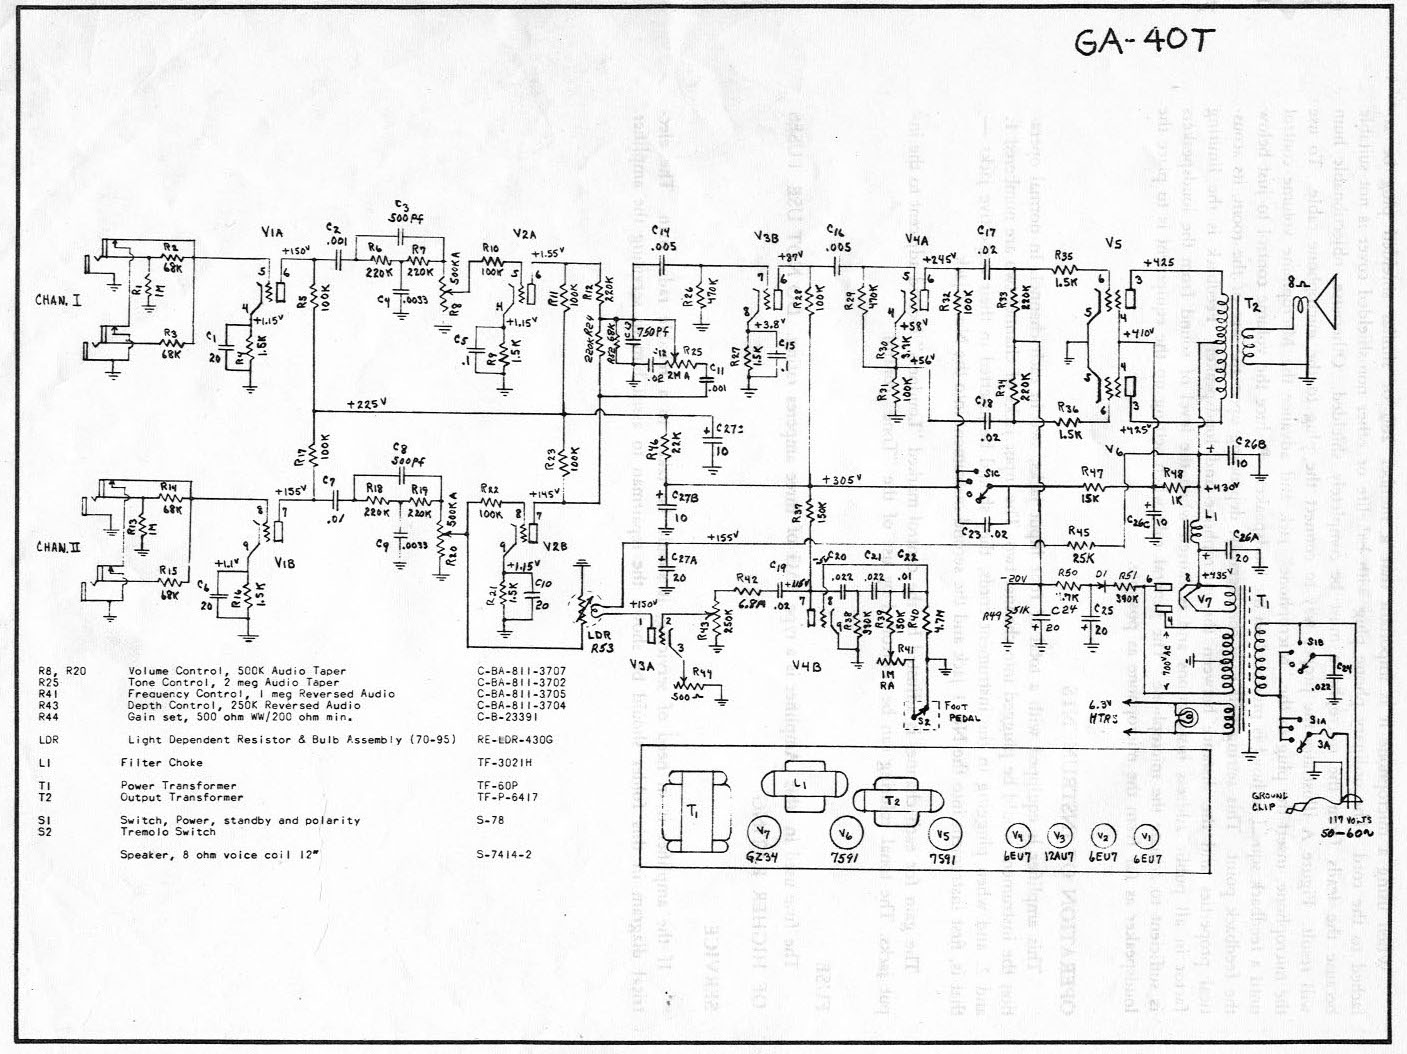 Gibson Les Paul 50s Wiring Diagram Drawing At Free For Personal Use 648x497 Original Epiphone Guitar Wirirng Diagrams 2 Pick 1407x1054 Schematics